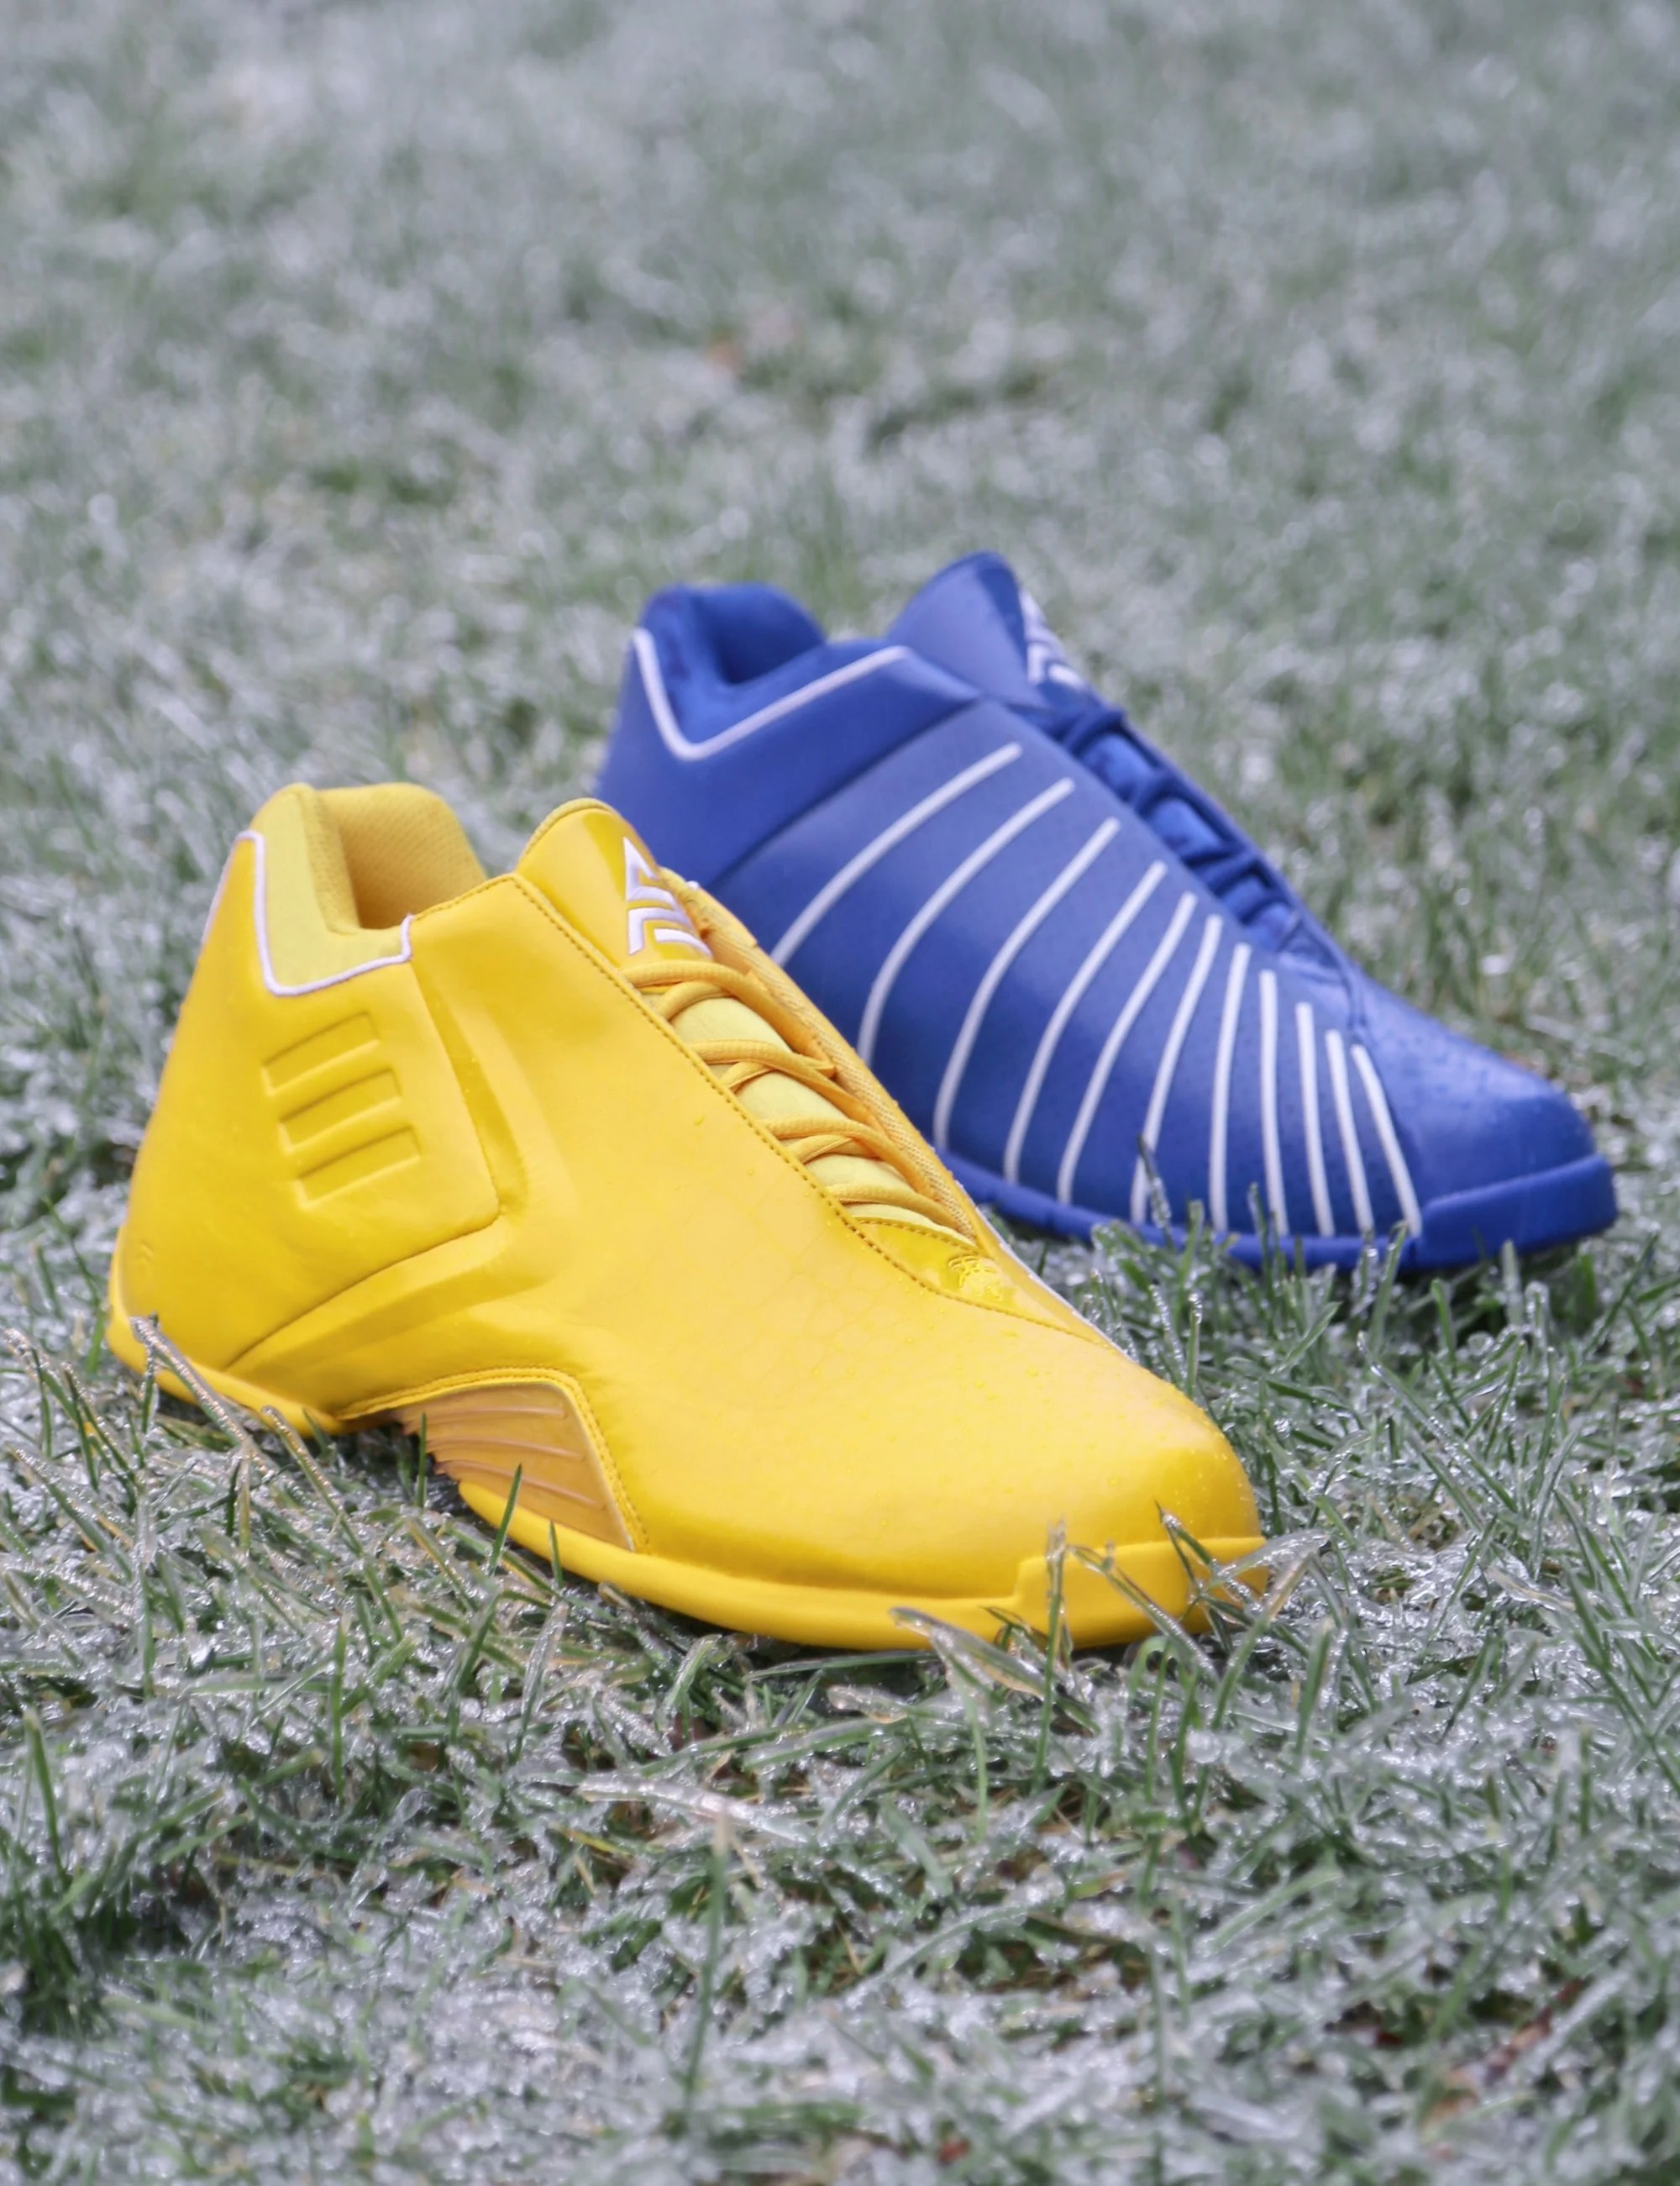 swaggy p adidas shoe